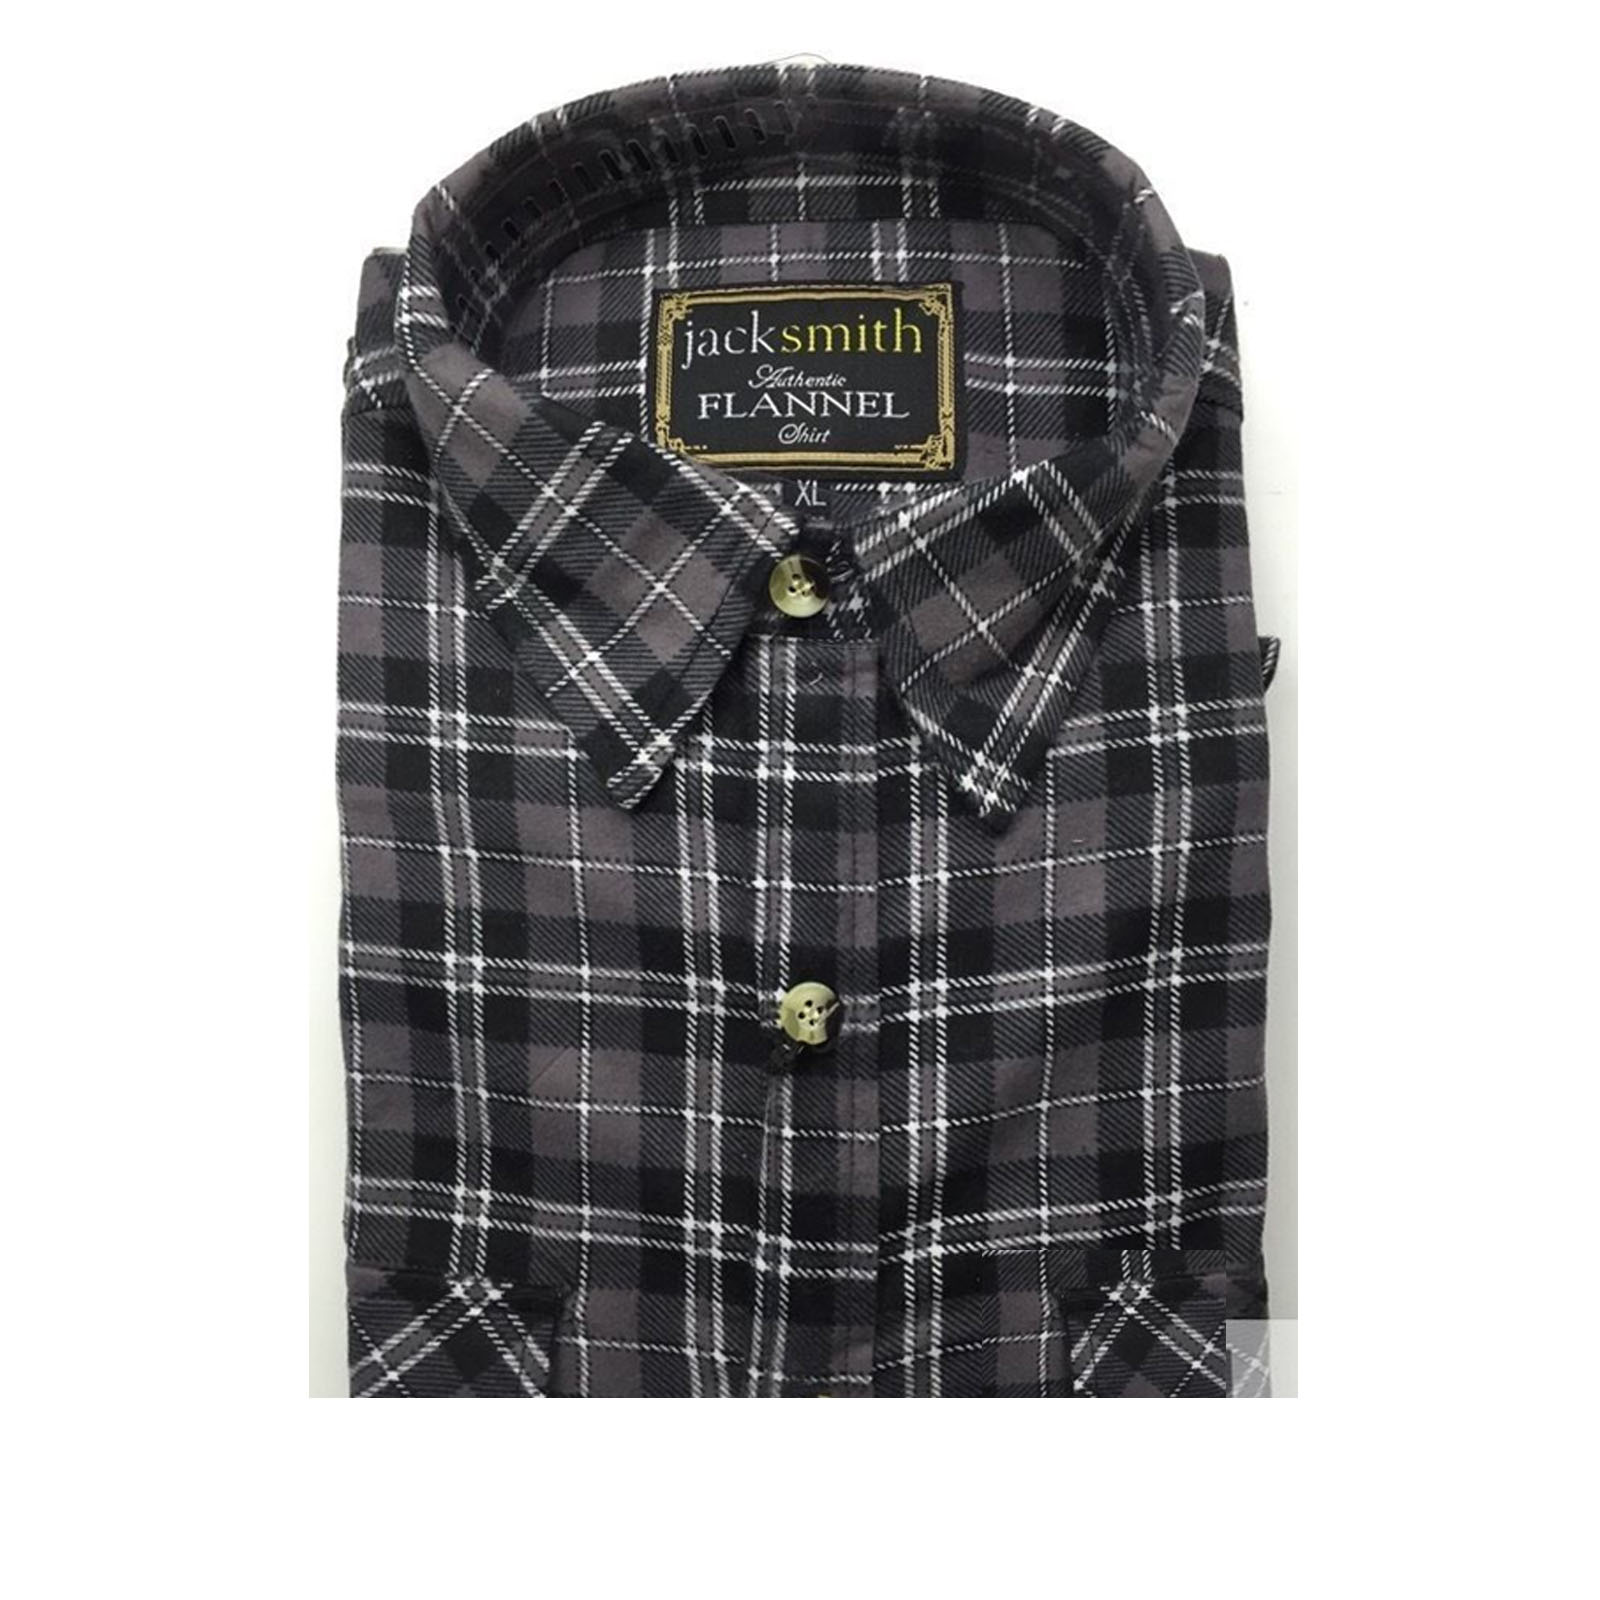 Men-039-s-FLANNELETTE-SHIRT-Check-100-COTTON-Flannel-Vintage-Long-Sleeve thumbnail 139